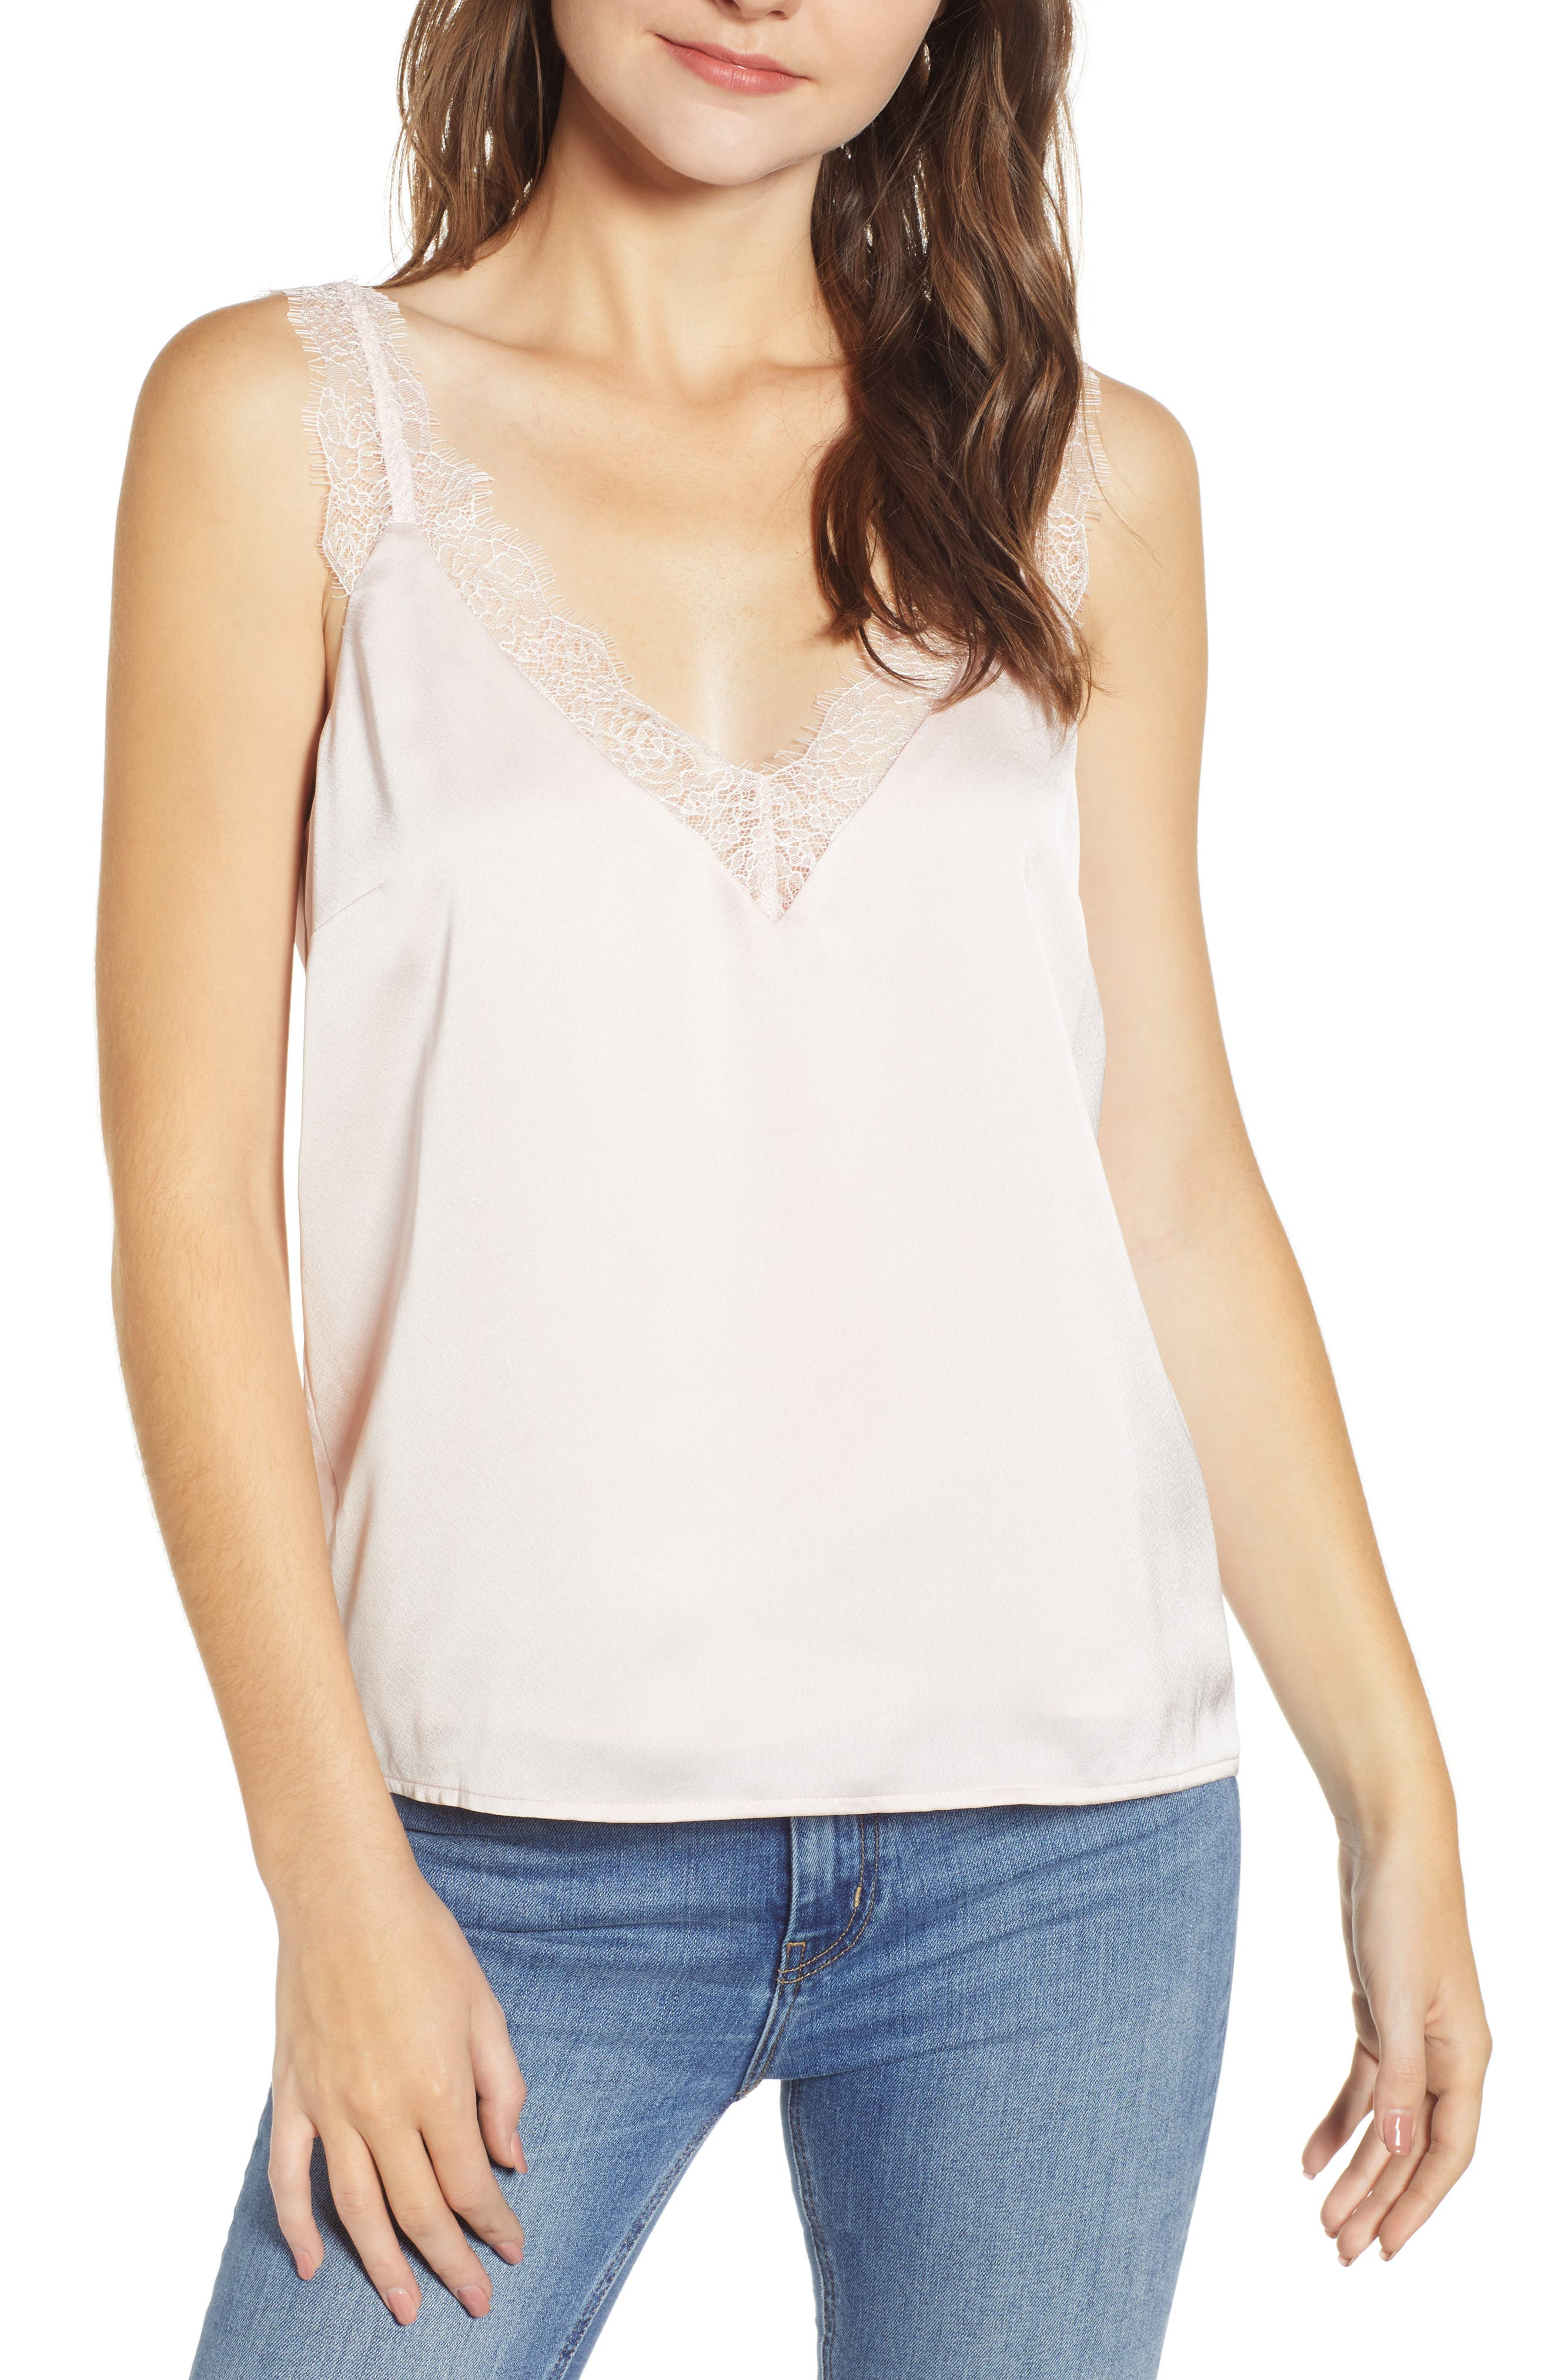 Heartloom Misty Lace Trim Camisole, Pink